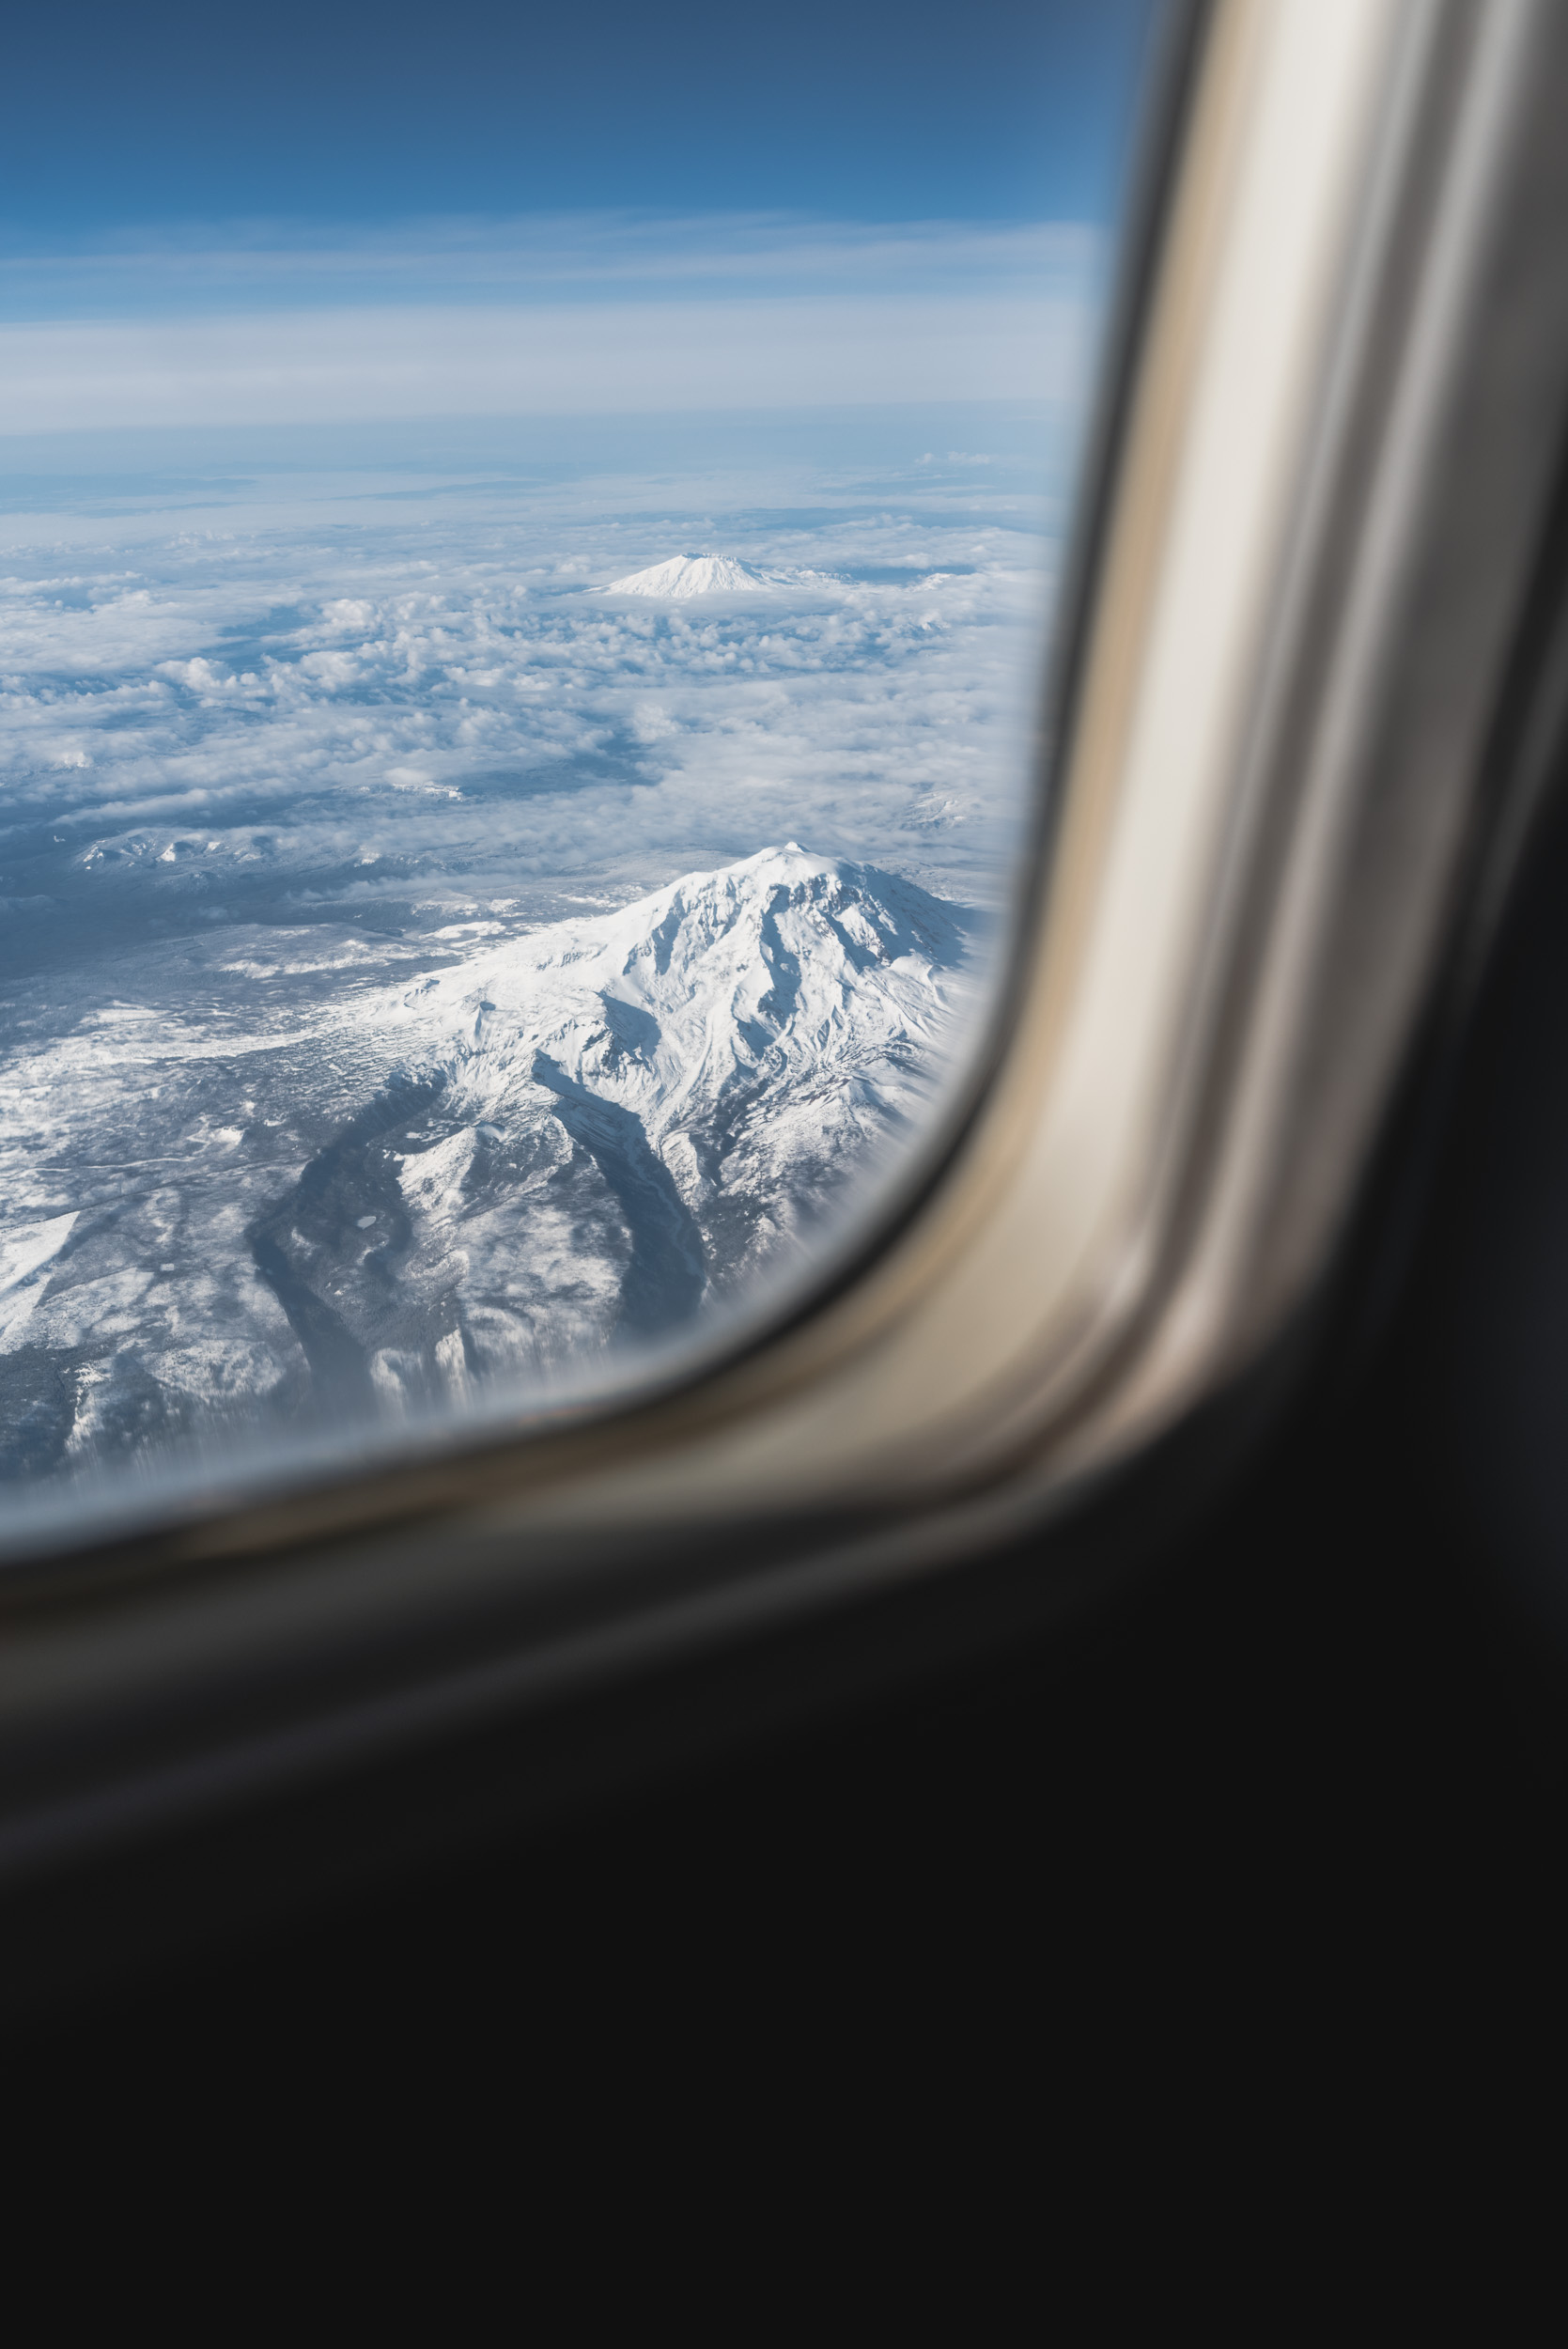 Mountain view from airplane window. Oregon